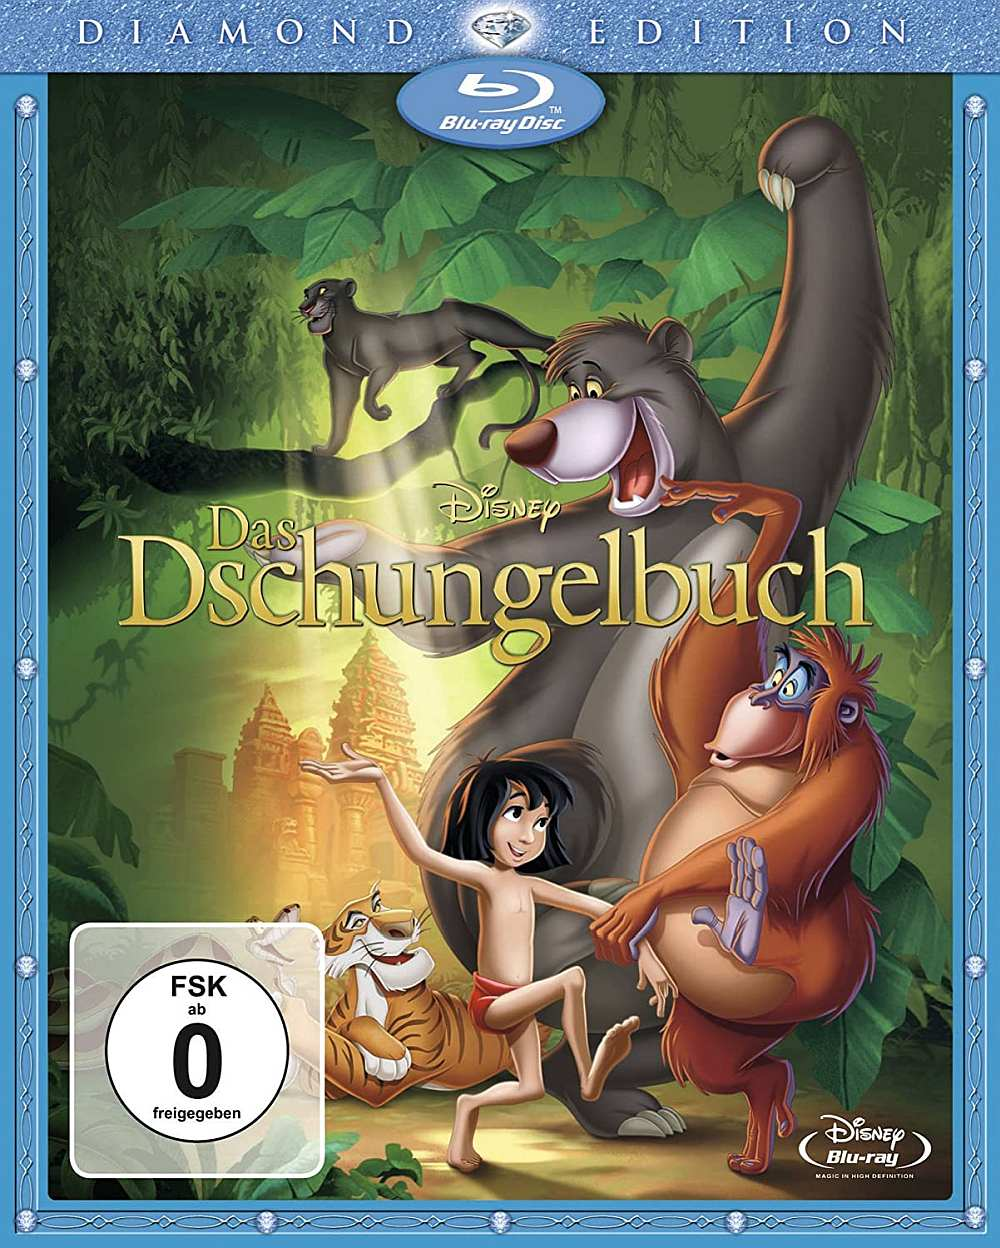 Watch The Jungle Book 1967 full movie online or